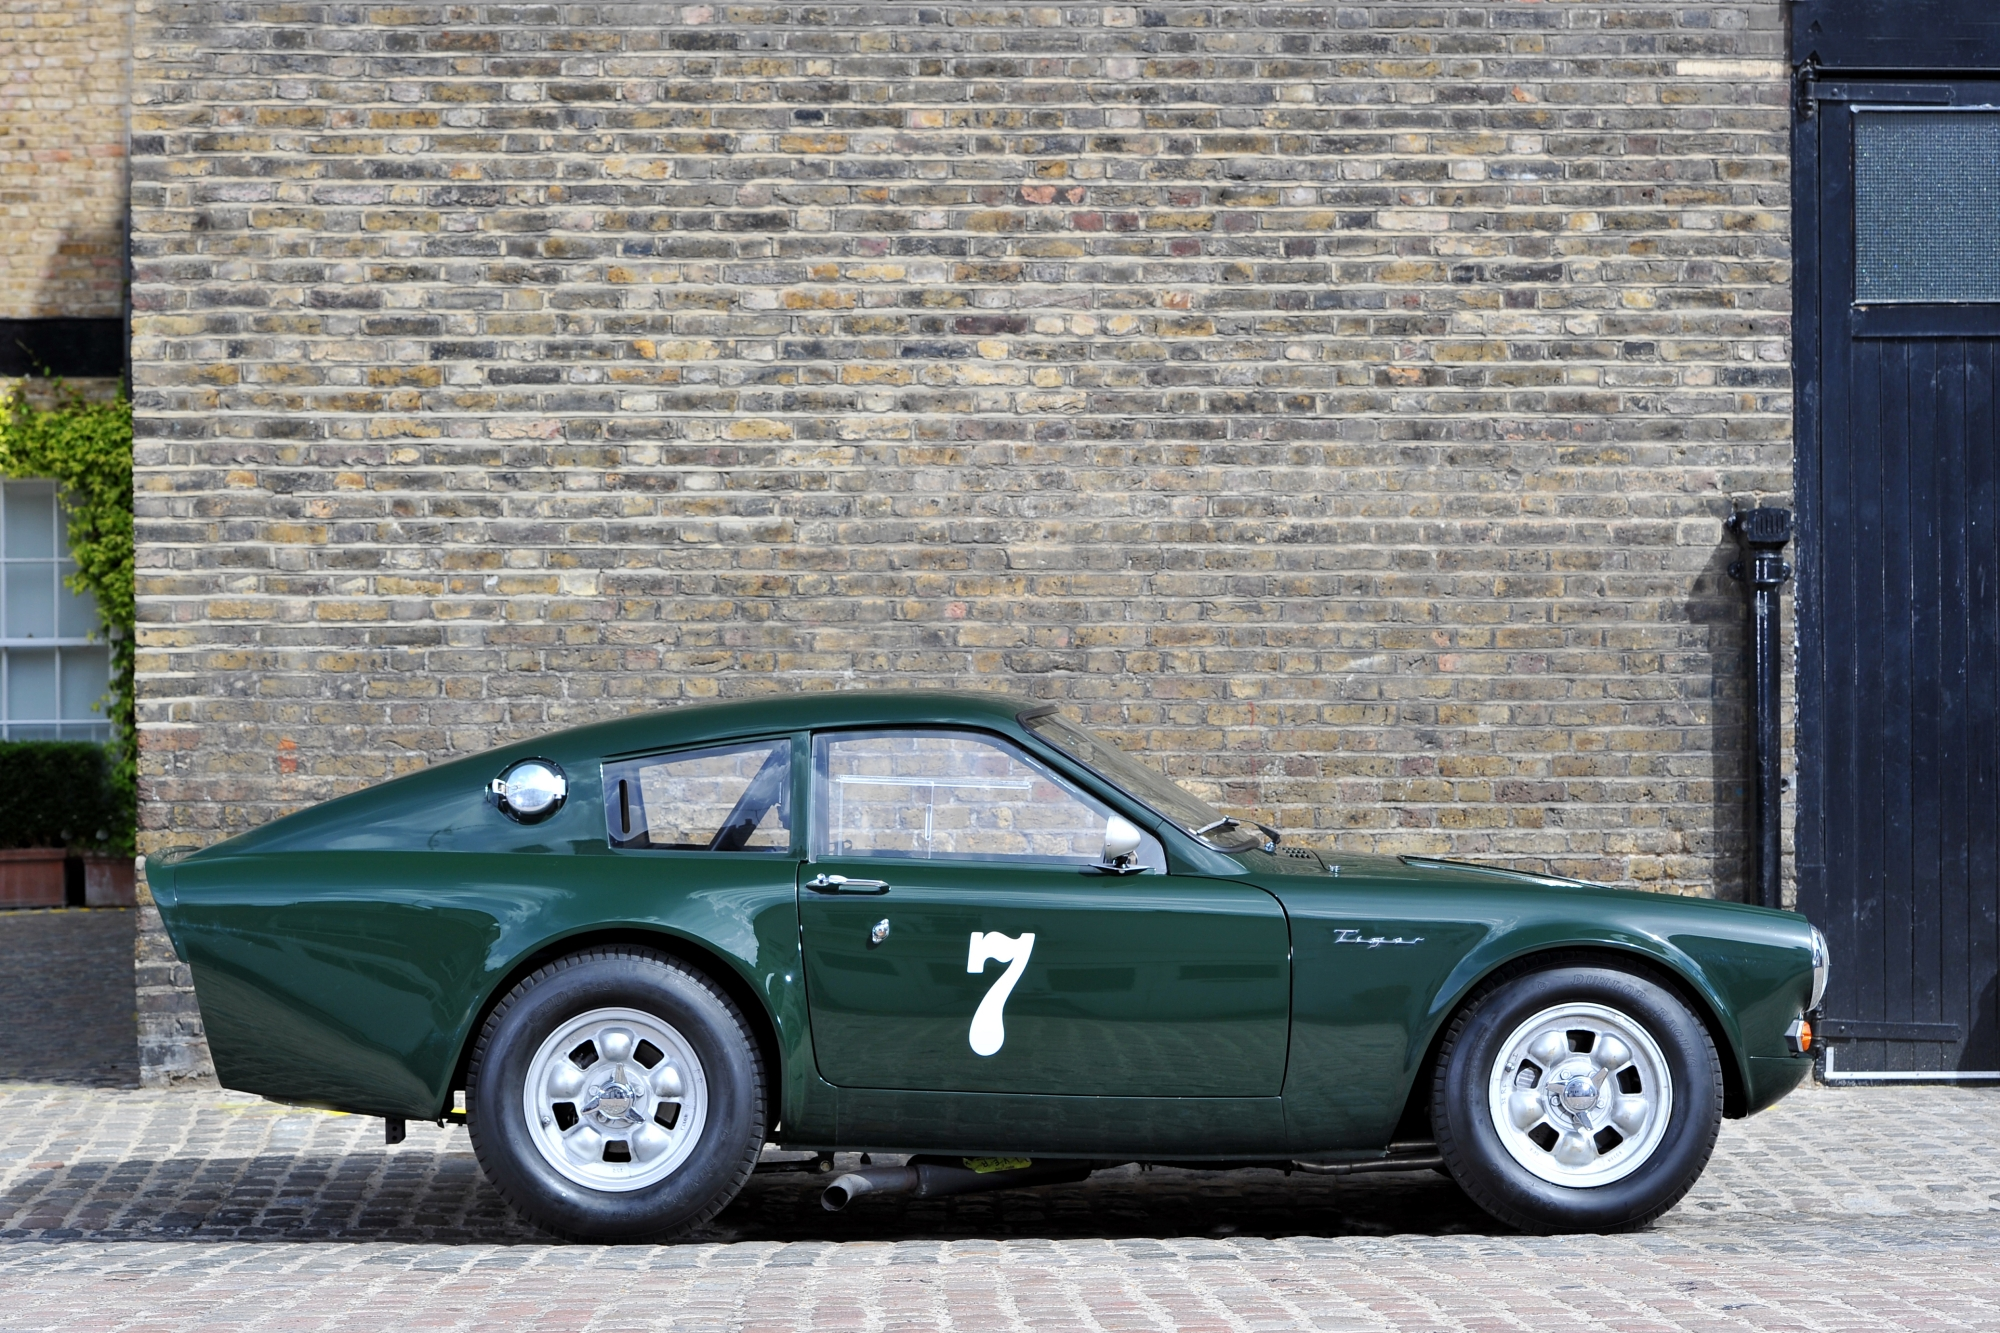 1964 Sunbeam Tiger Le Mans Coupe | Previously Sold | FISKENS